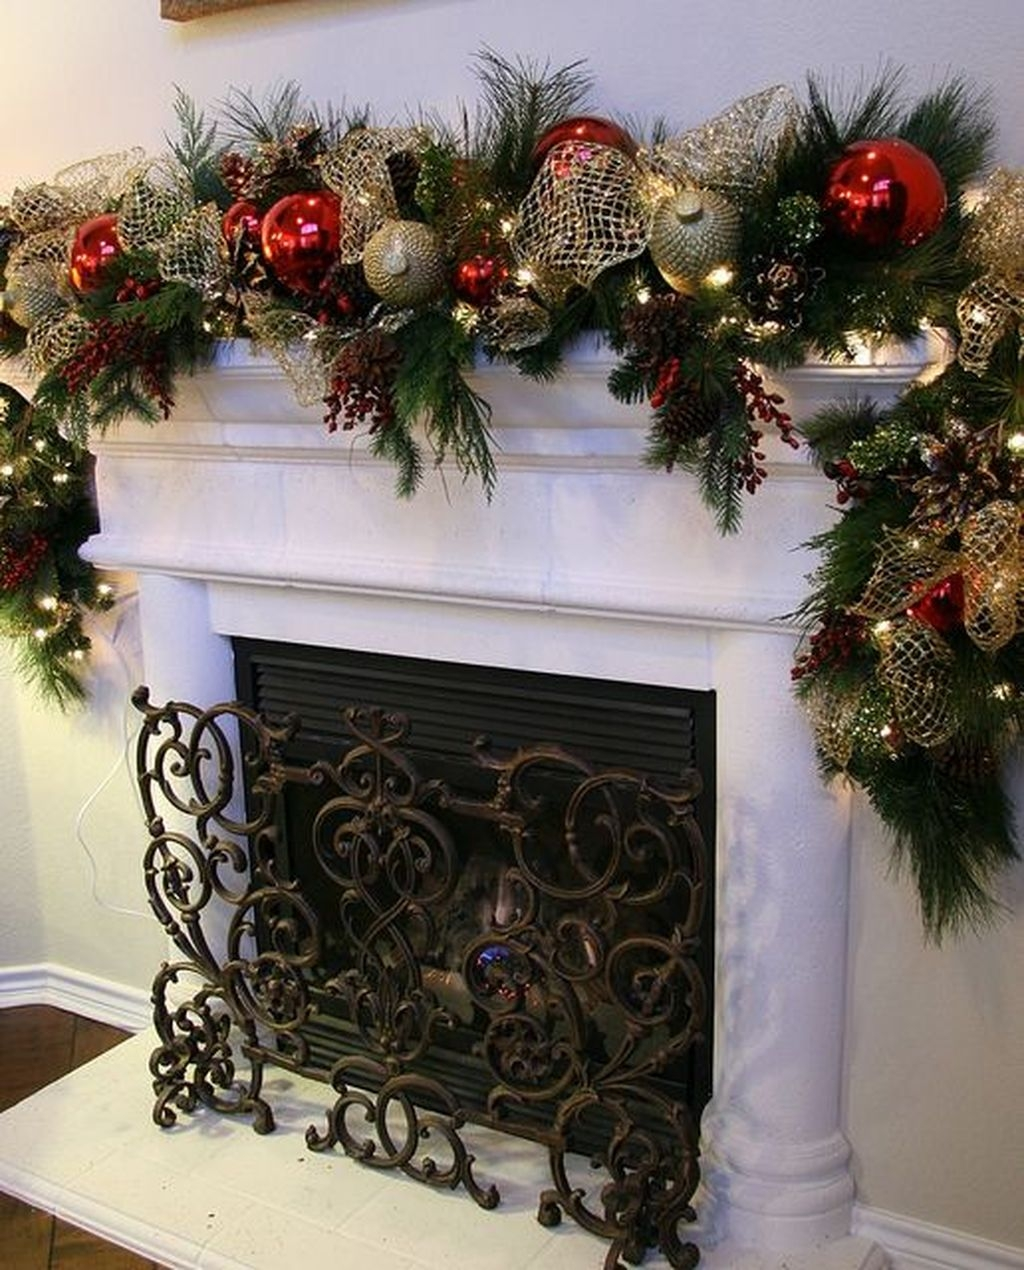 The Best Christmas Fireplace Decoration For Any Home Model 13